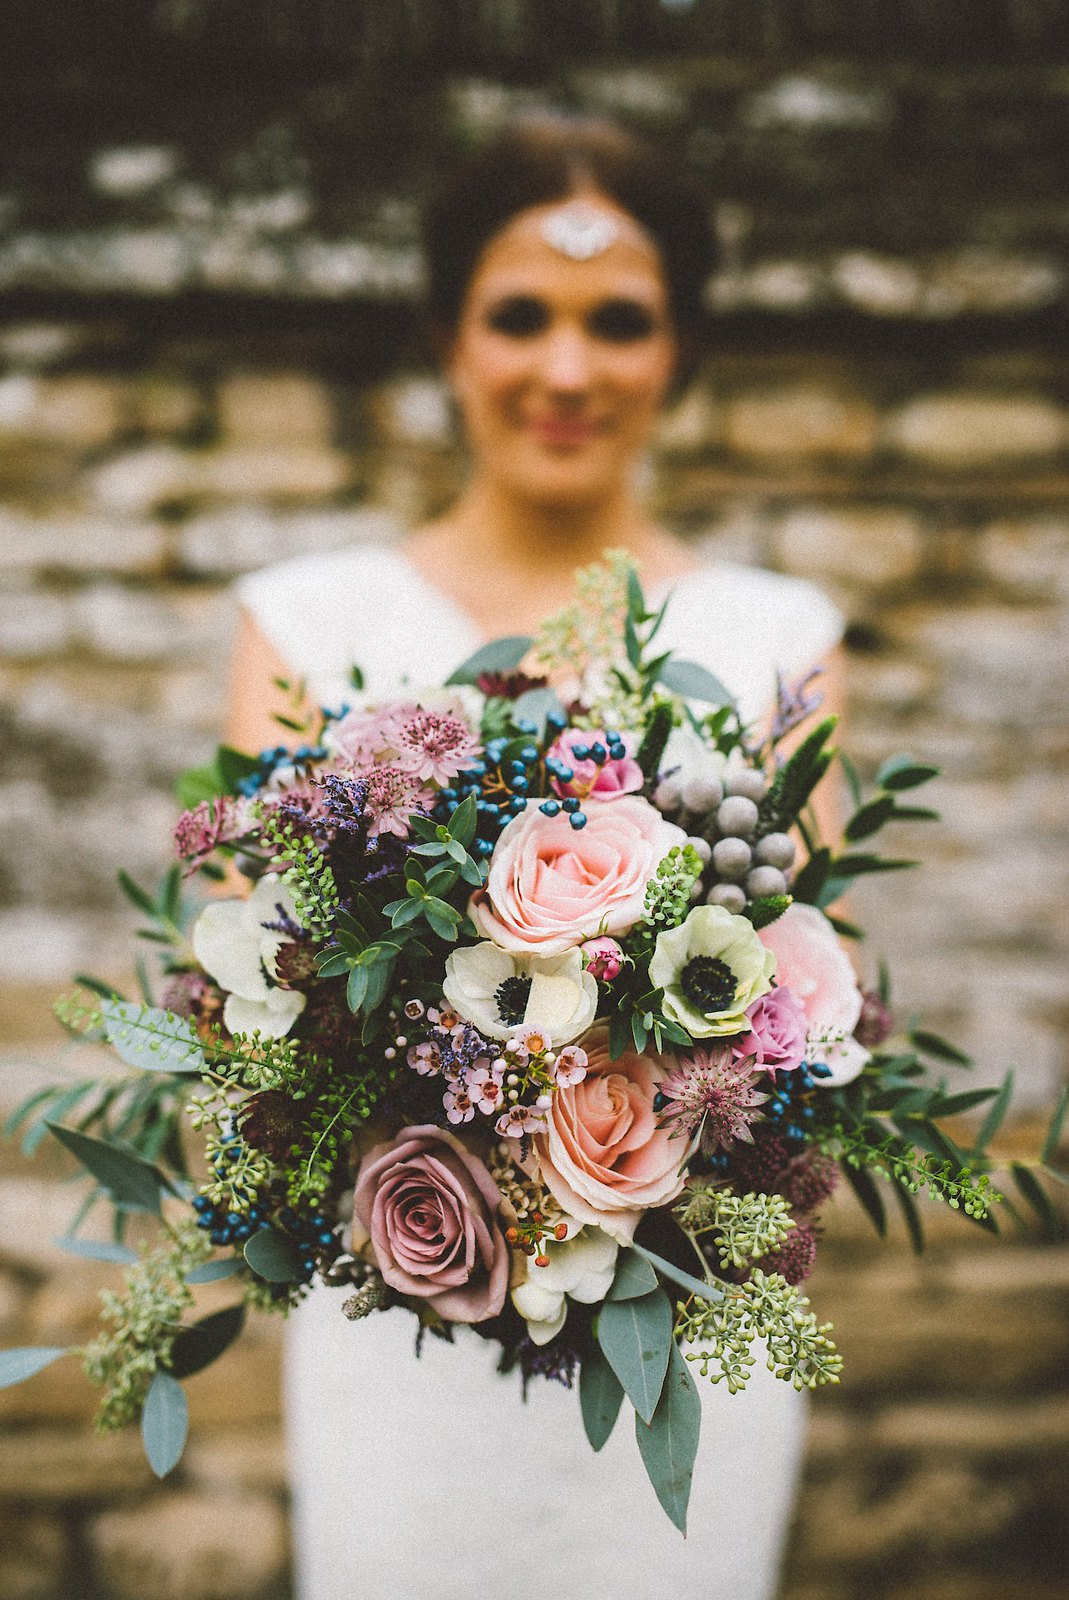 Wedding flowers for autumn autumn wedding flowers ideas for Bridal flower bouquets ideas